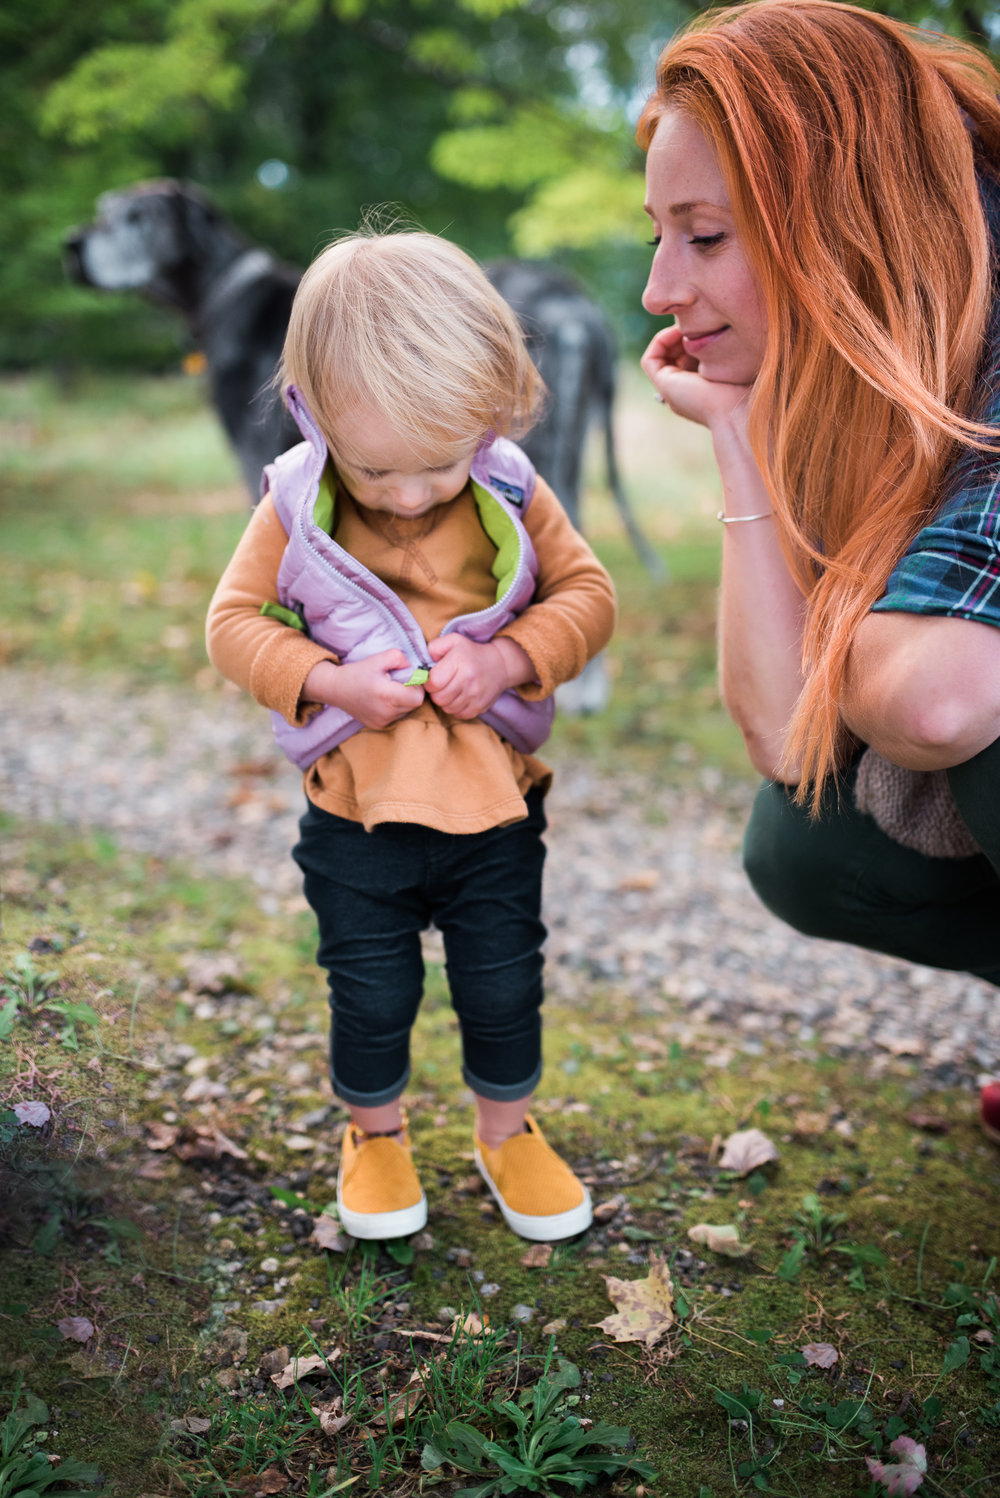 fall family picture toddler zipping her vest while her mother looks on in Washington CT photo by Lindsey Victoria Photography